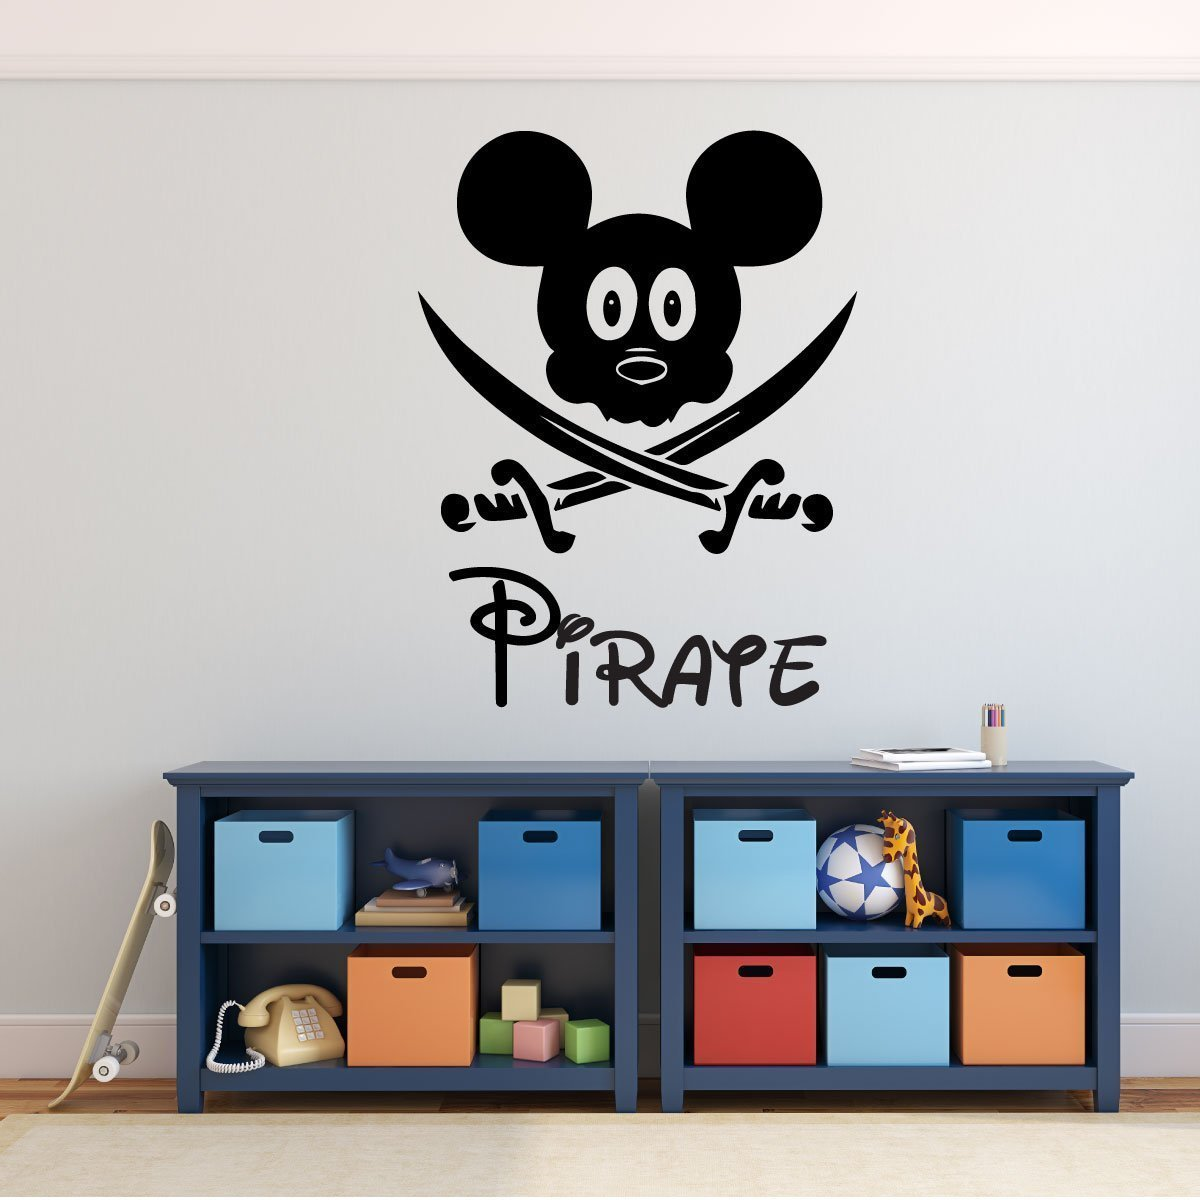 . Pirate Mickey Mouse with Swords Vinyl Decor Wall Decal